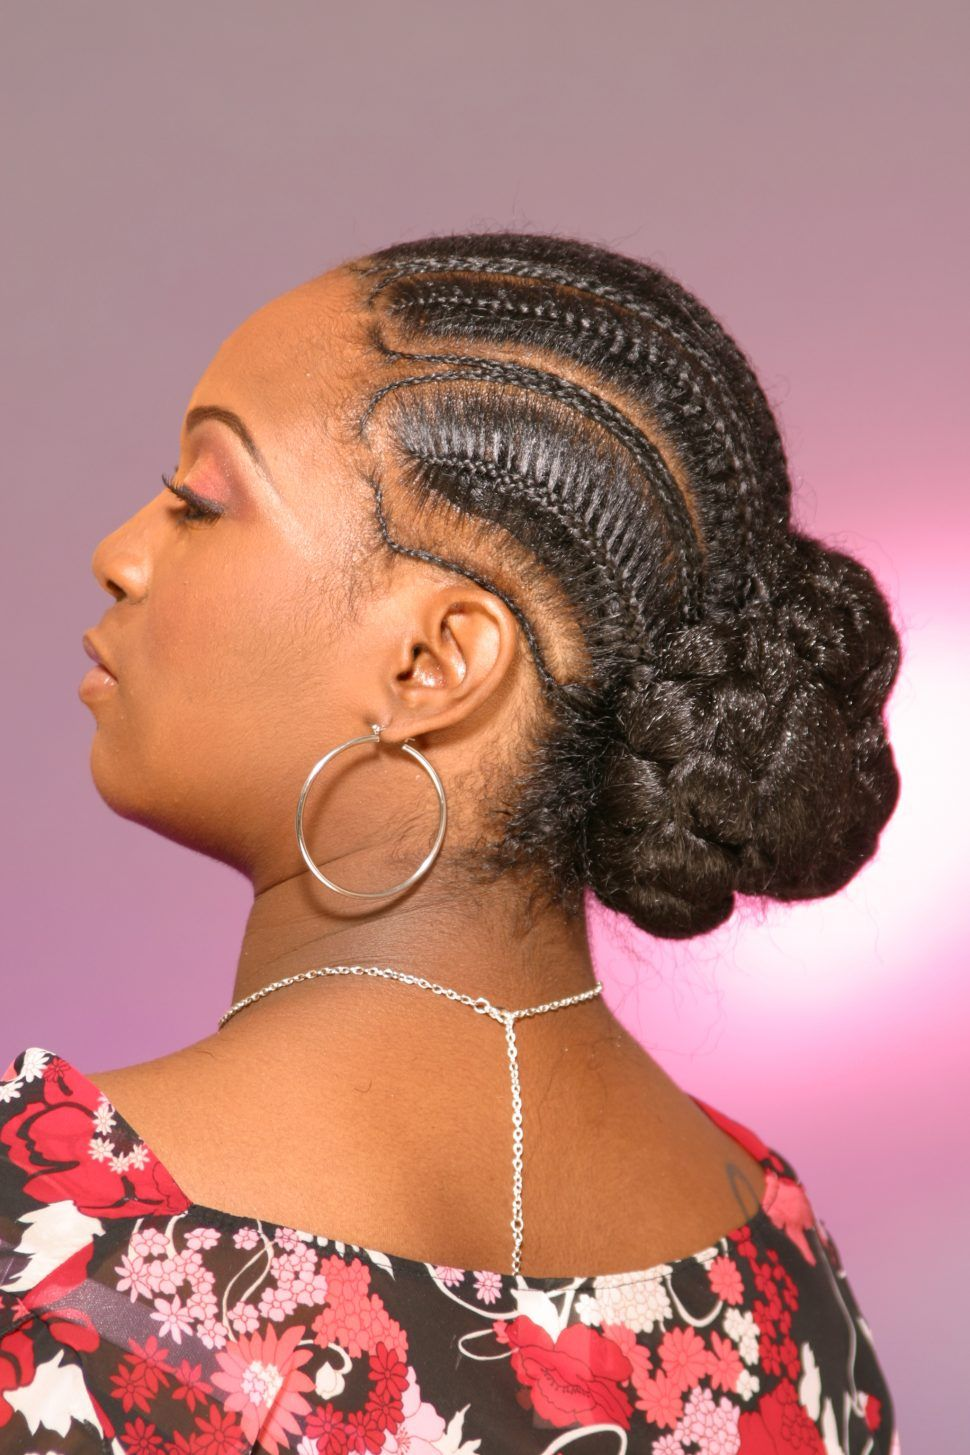 Hairstyles African Fishtail Braids Styles Easy Braid Hairstyles For Black Hair American African Braids Hairstyles African Hairstyles Braided Hairstyles Easy